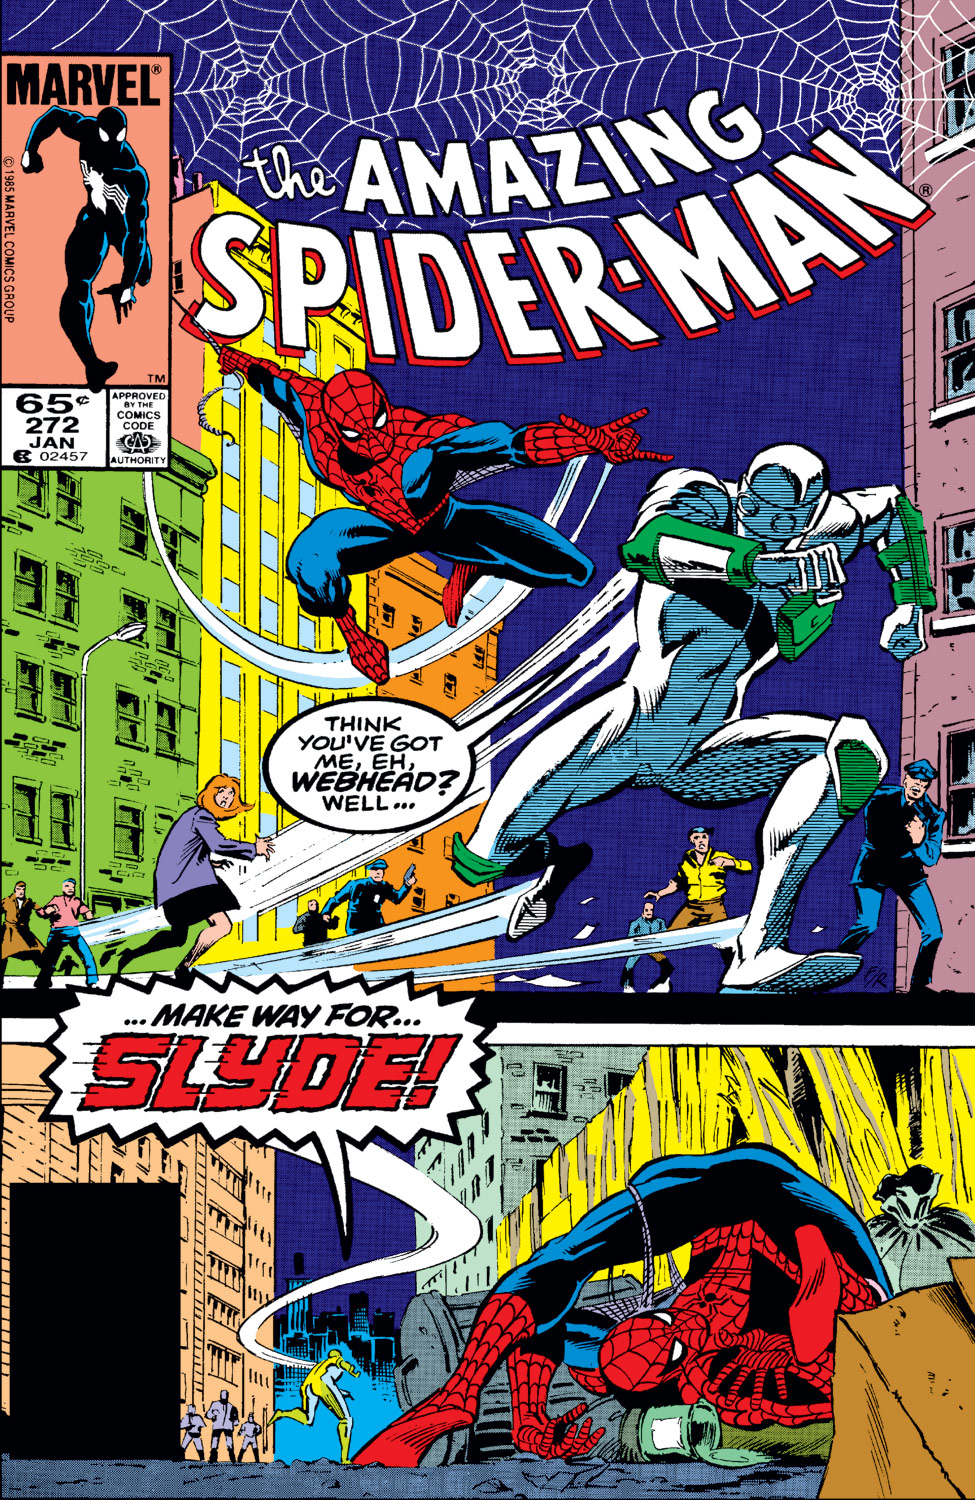 The Amazing Spider-Man (1963) #272